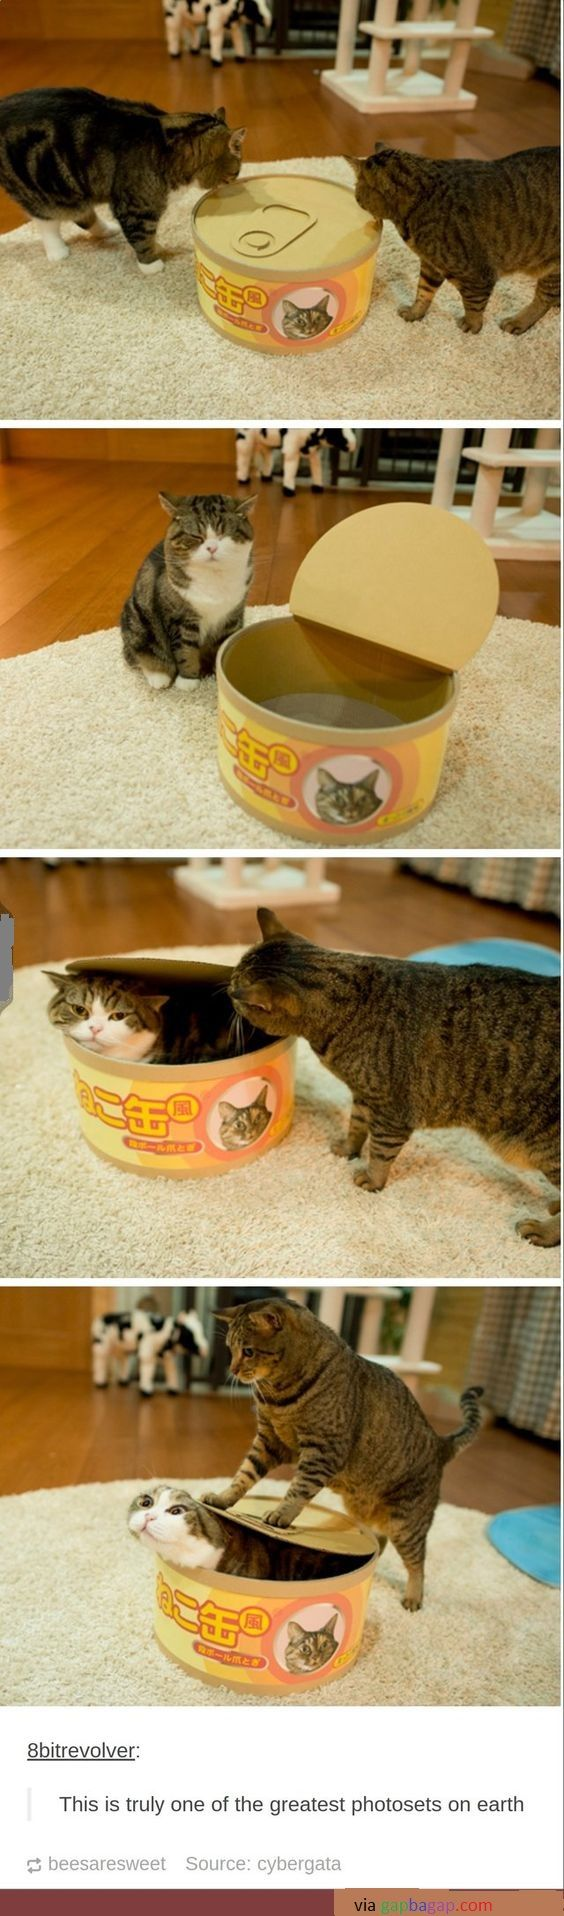 One of the greatest photoset on earth #funnycats